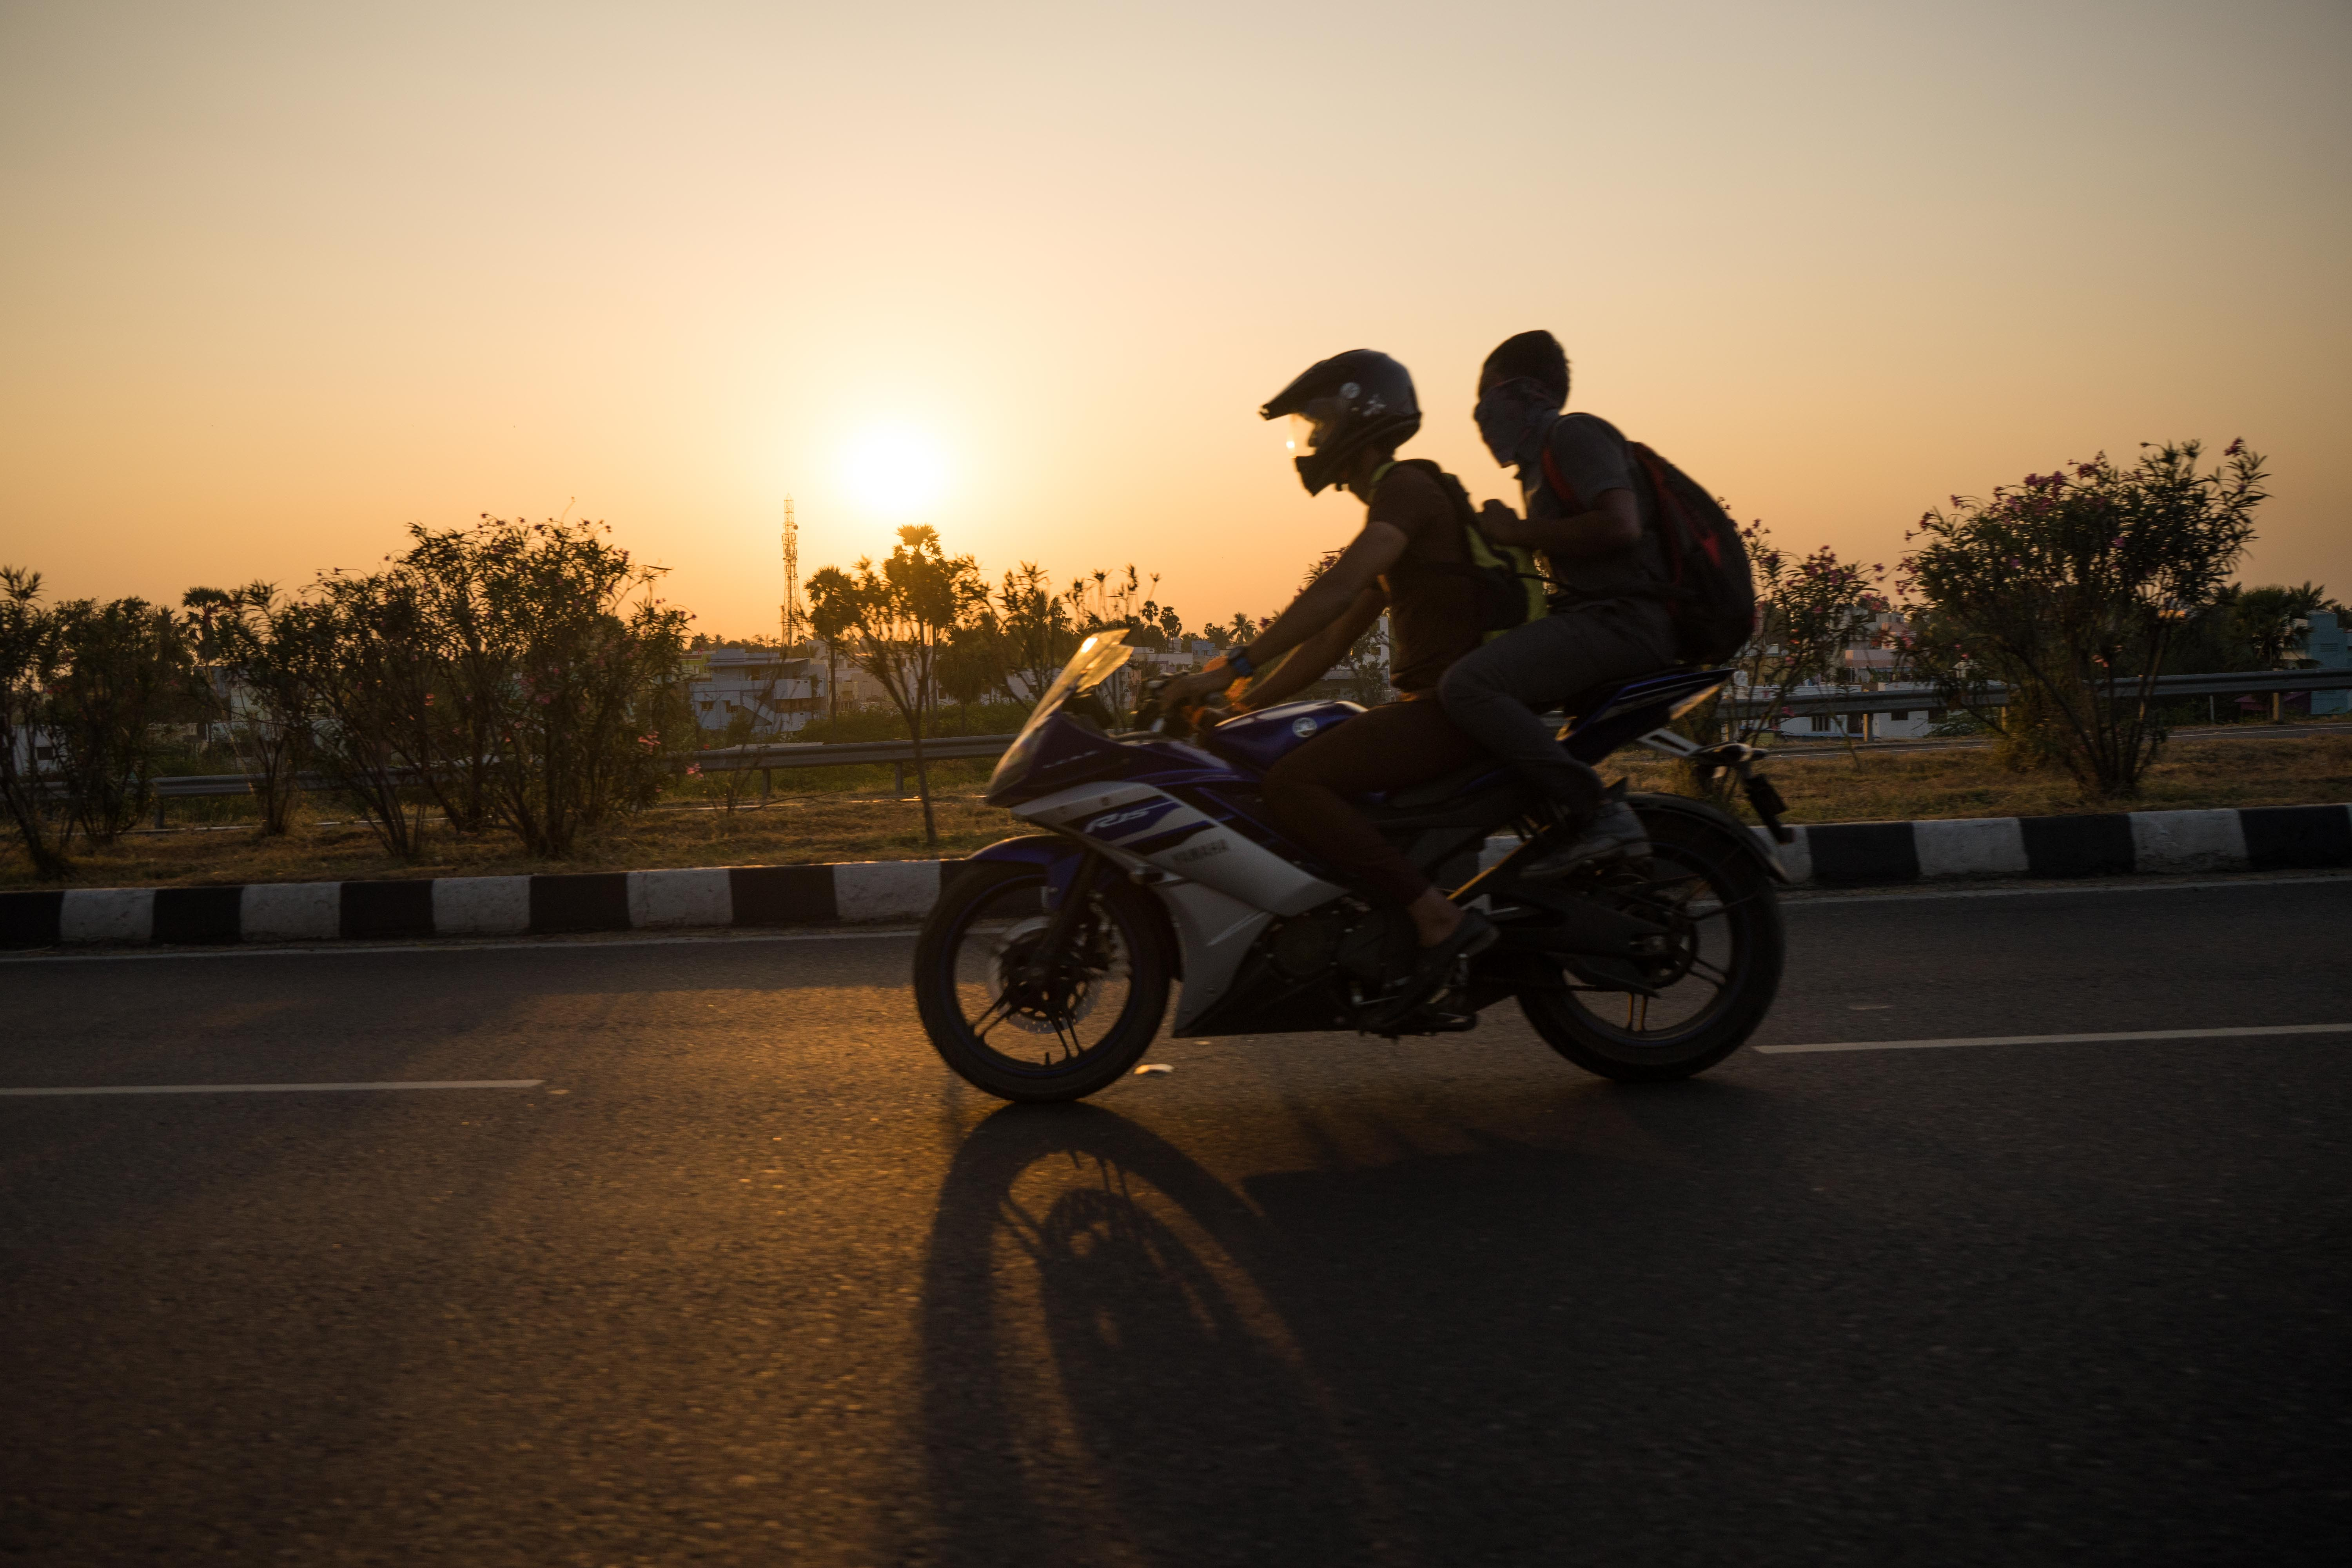 Motorbike passing in front of a sunset in India